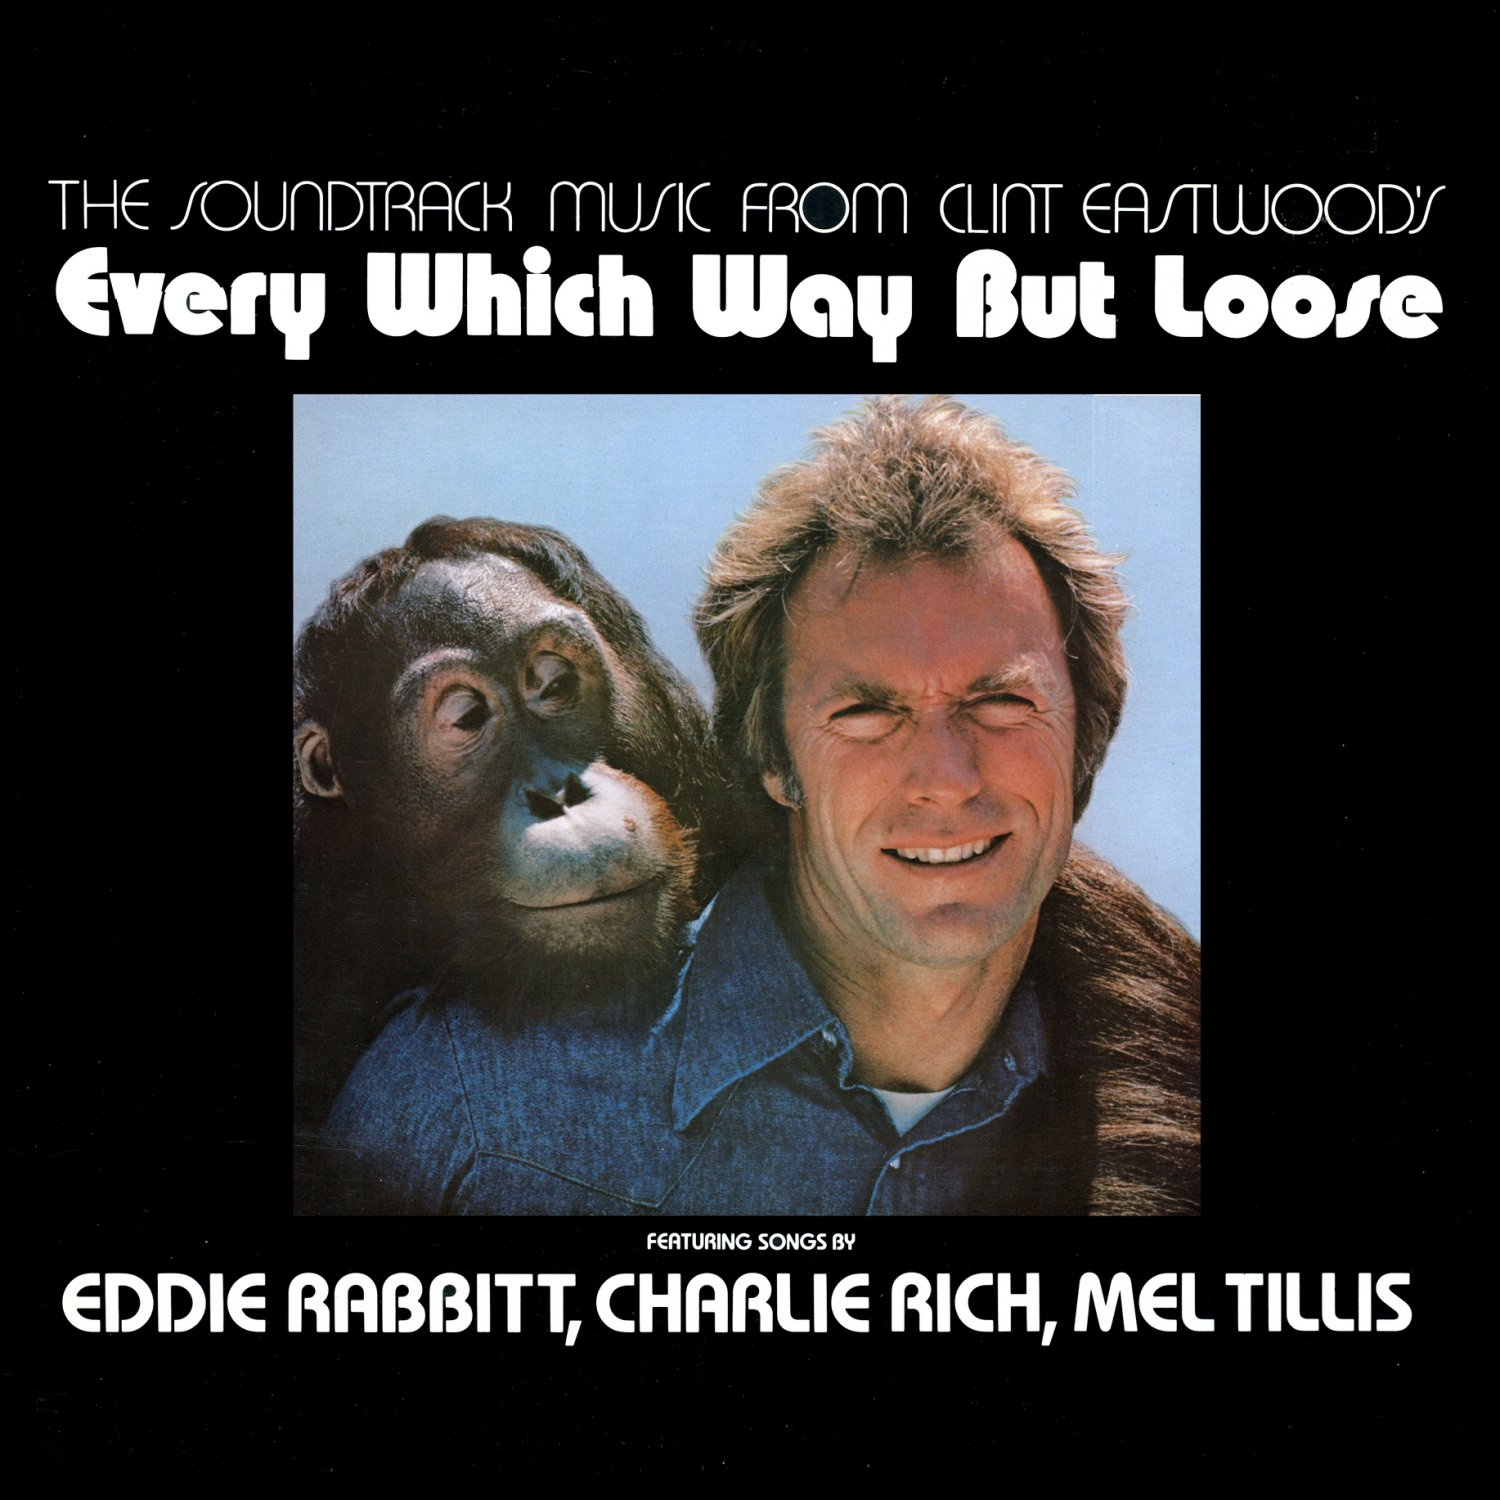 Every Which Way But Loose - Original Soundtrack, Steve Dorff & Clint Eastwood OST LP/CD